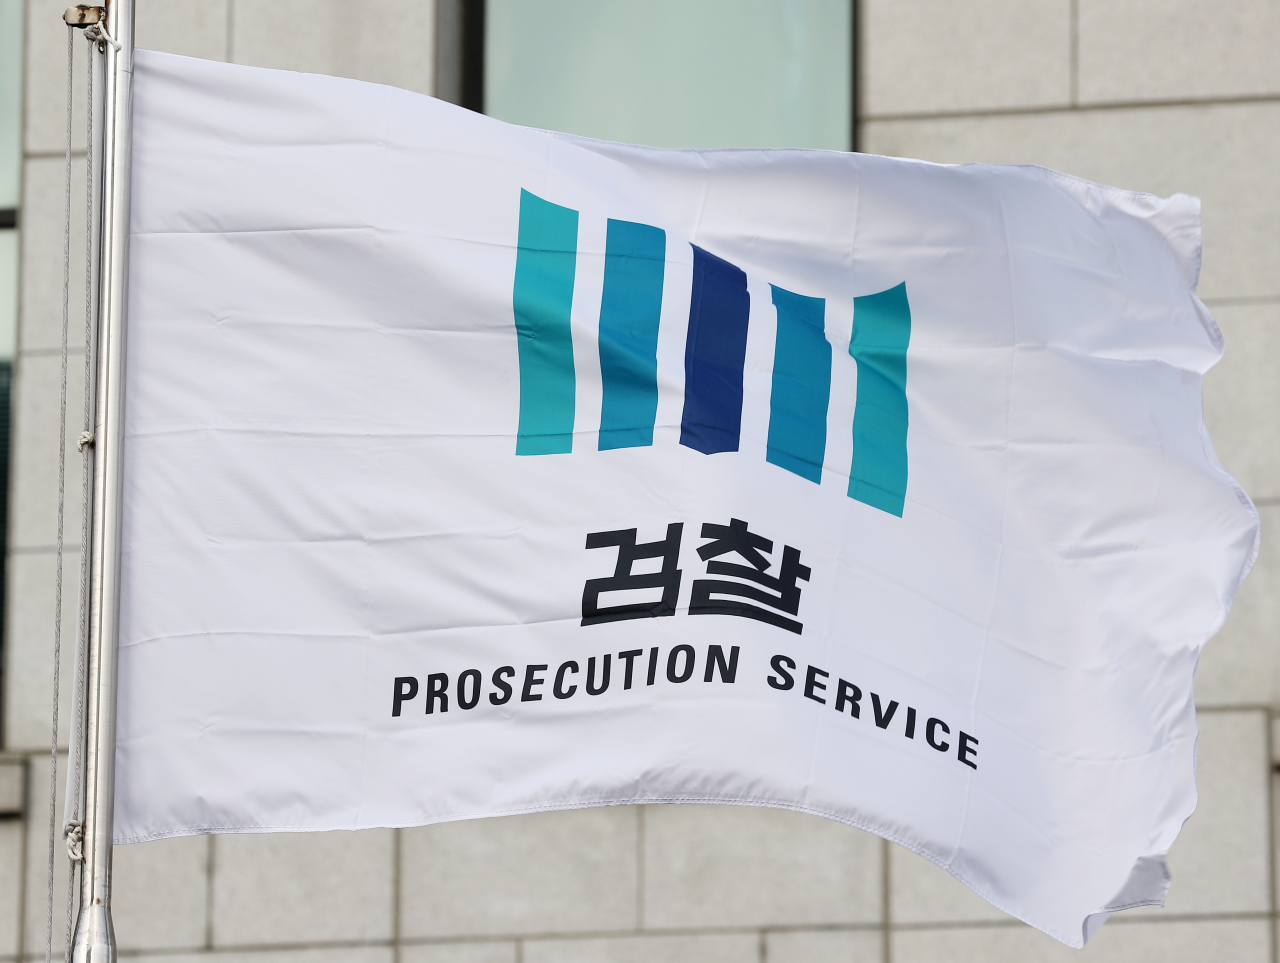 South Korean Prosecution Service (Yonhap)